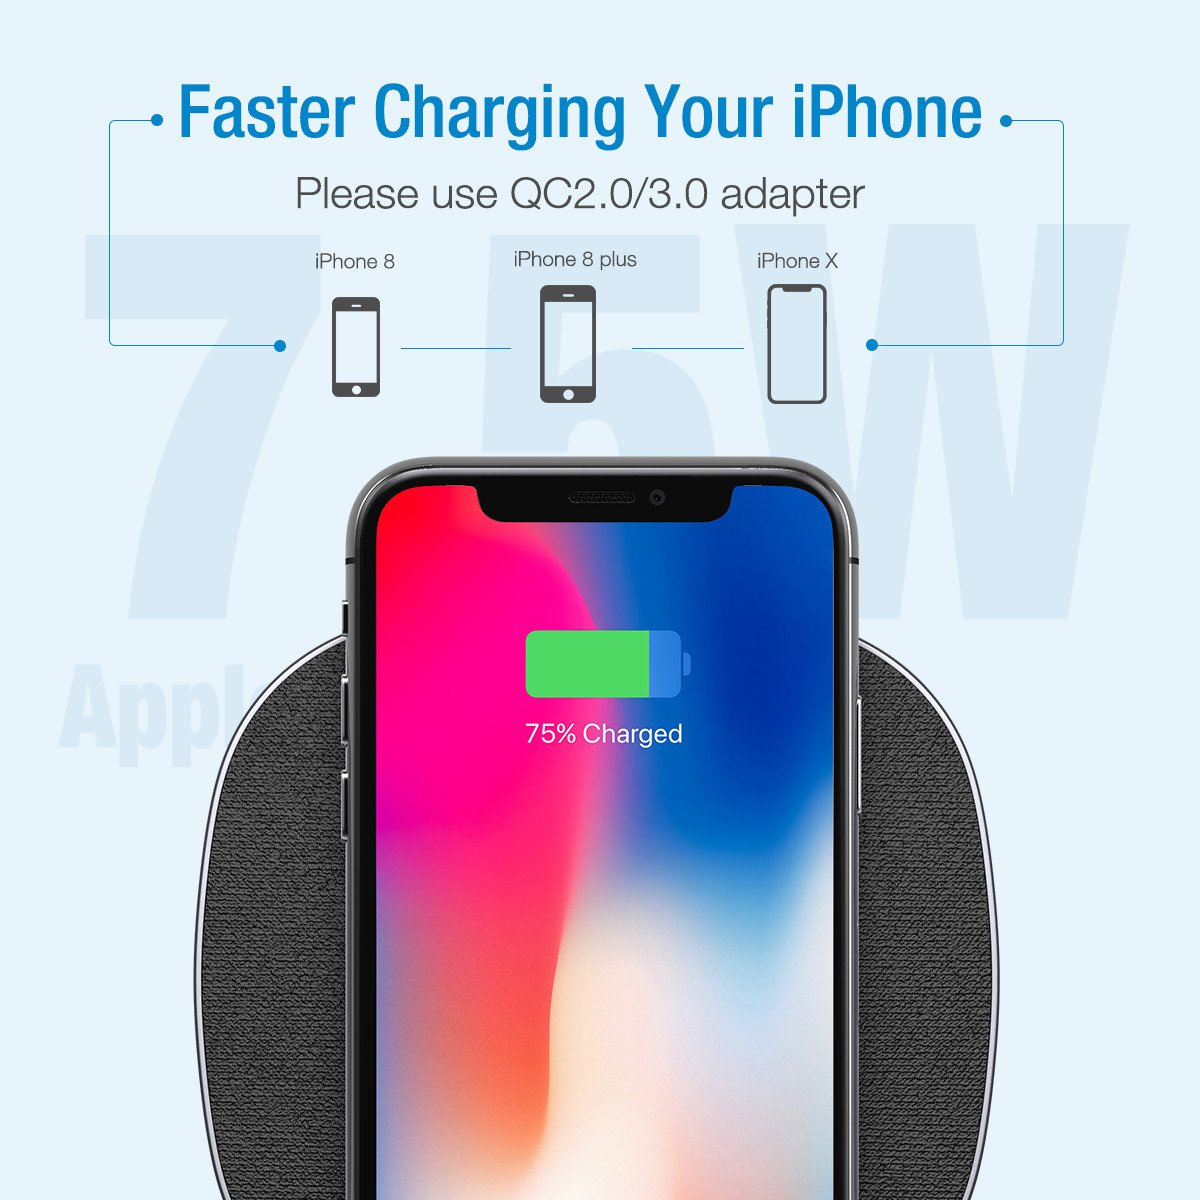 Poweradd Wireless Charger, Qi-Certified Fast Wireless Fabric Charger Pad, 10W Fast Charging for Samsung S6Edge+, S7, S7Edge, S8, S8Plus, Note7, Note8, 7.5W Fast Charger for iPhone X, iPhone8 / 8plus